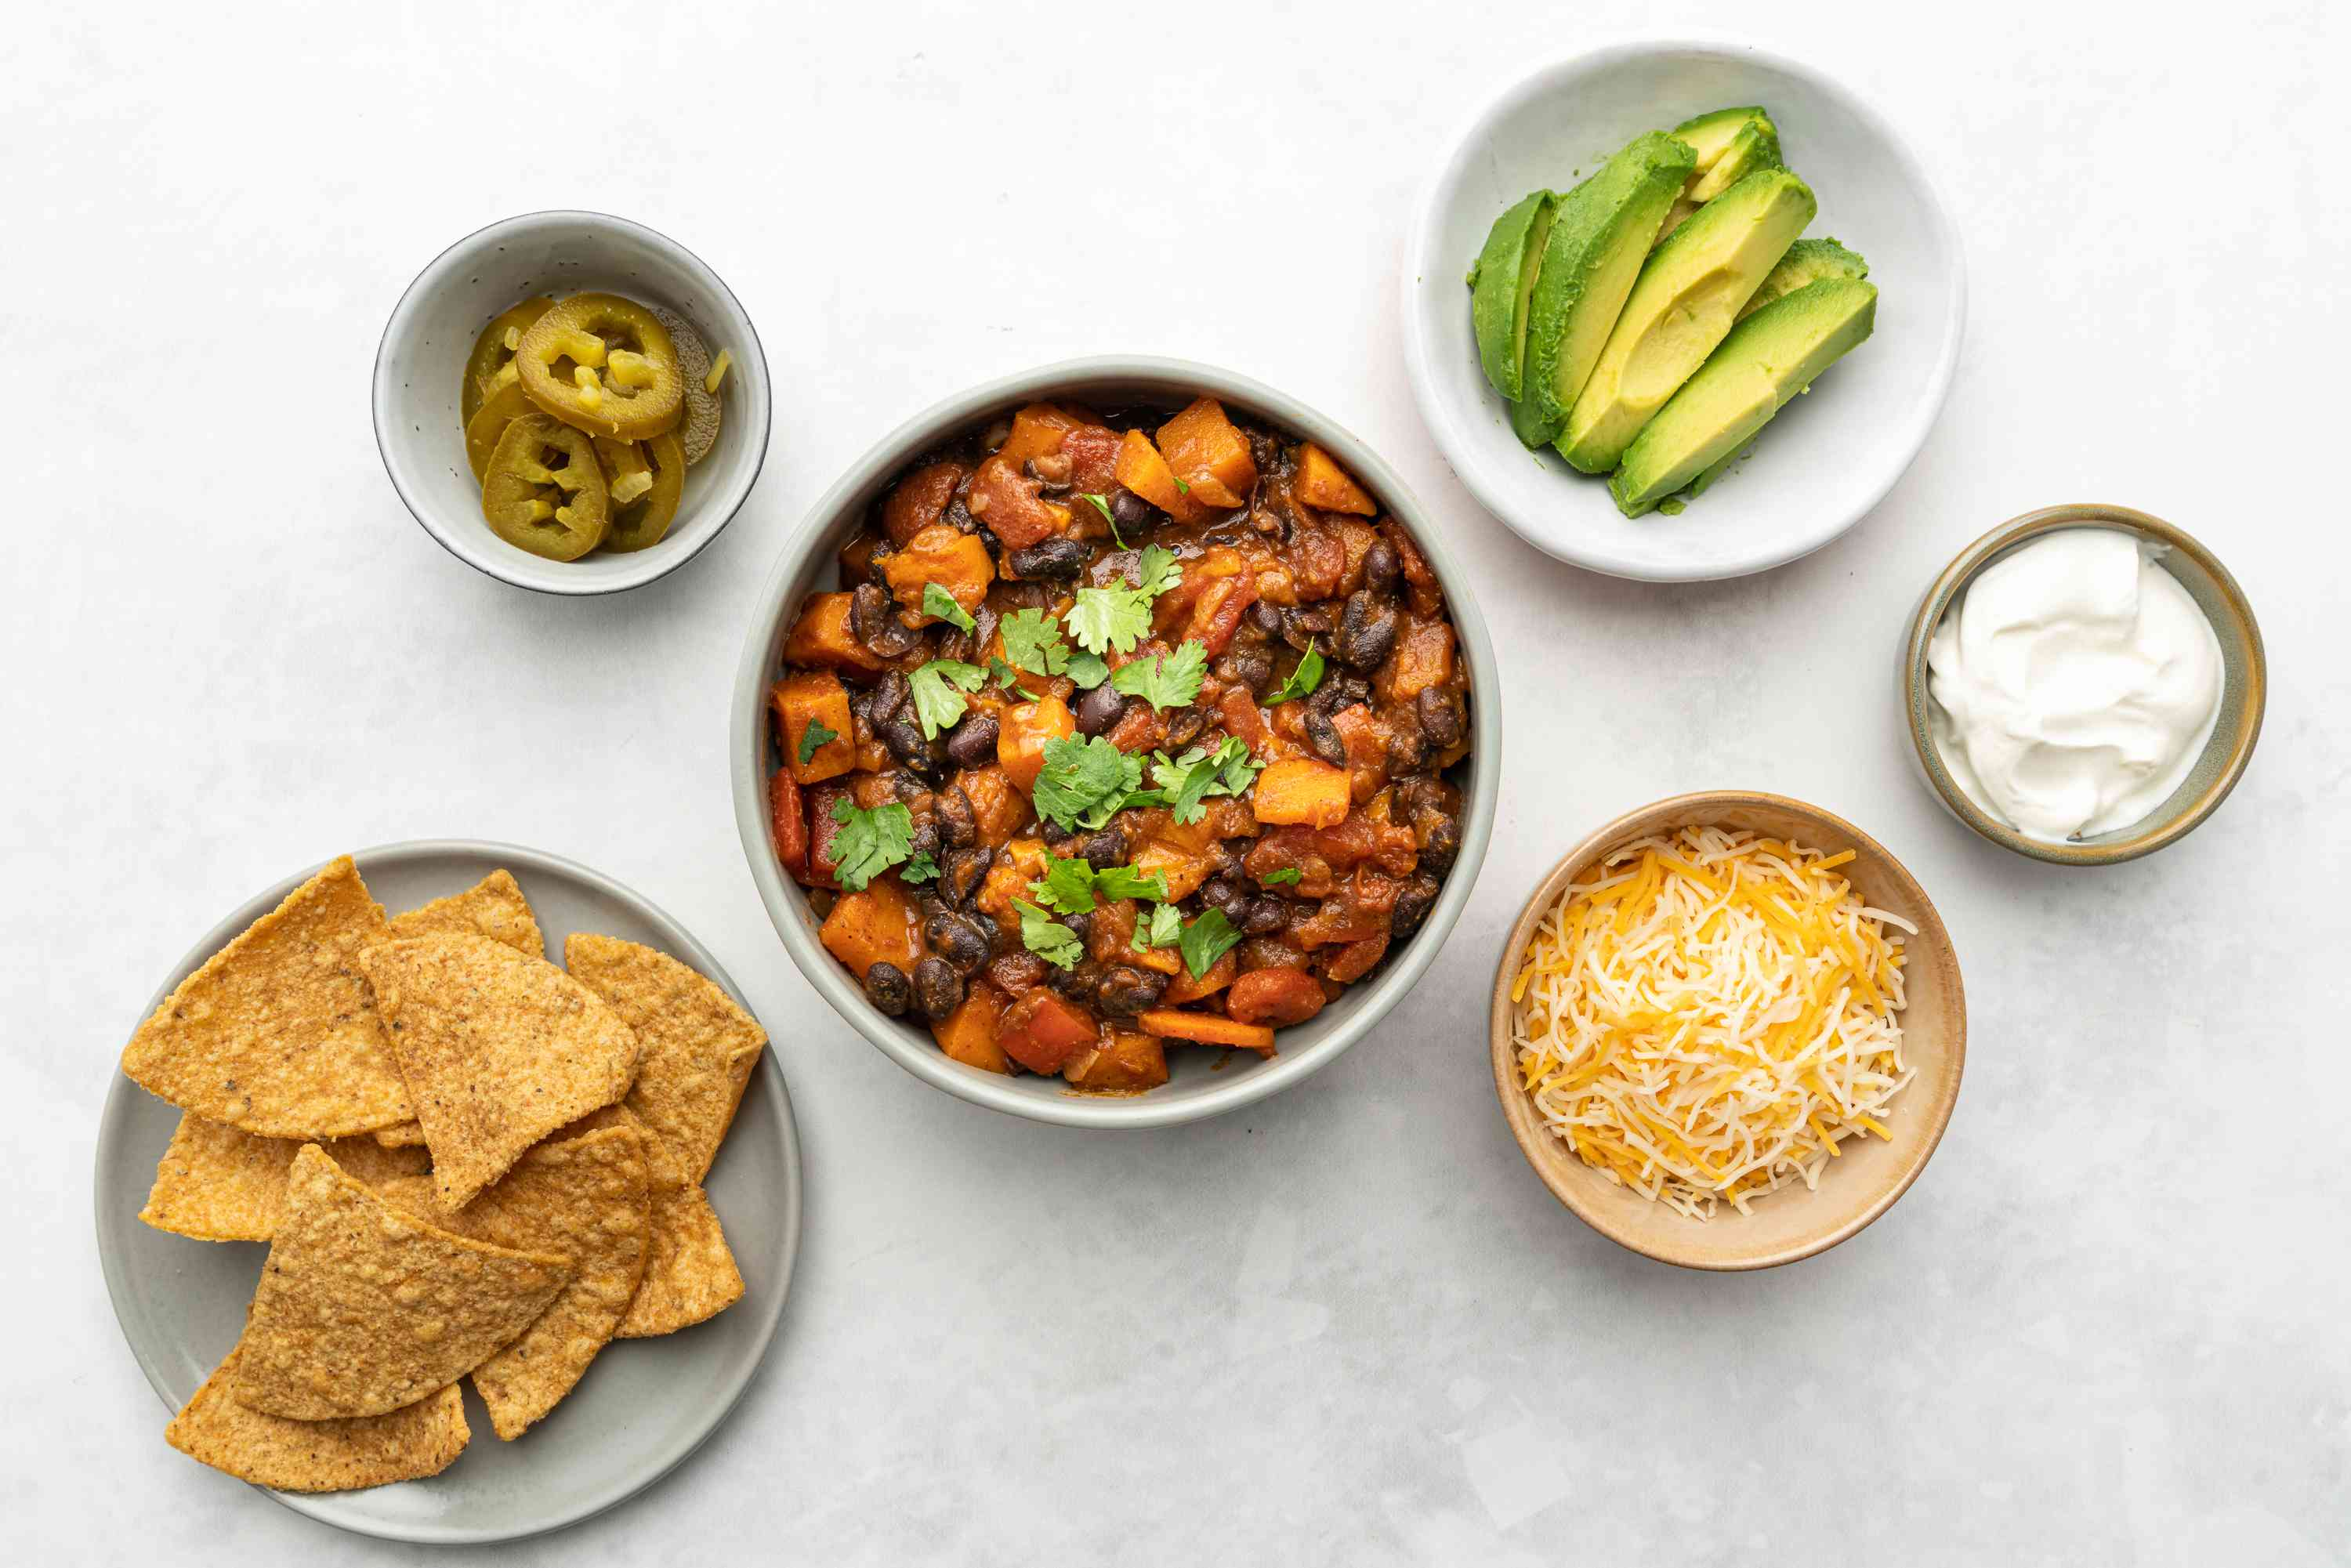 Black Bean and Sweet Potato Chili in a bowl, served with chips, cheese, sour cream, avocados and pickled jalapeños